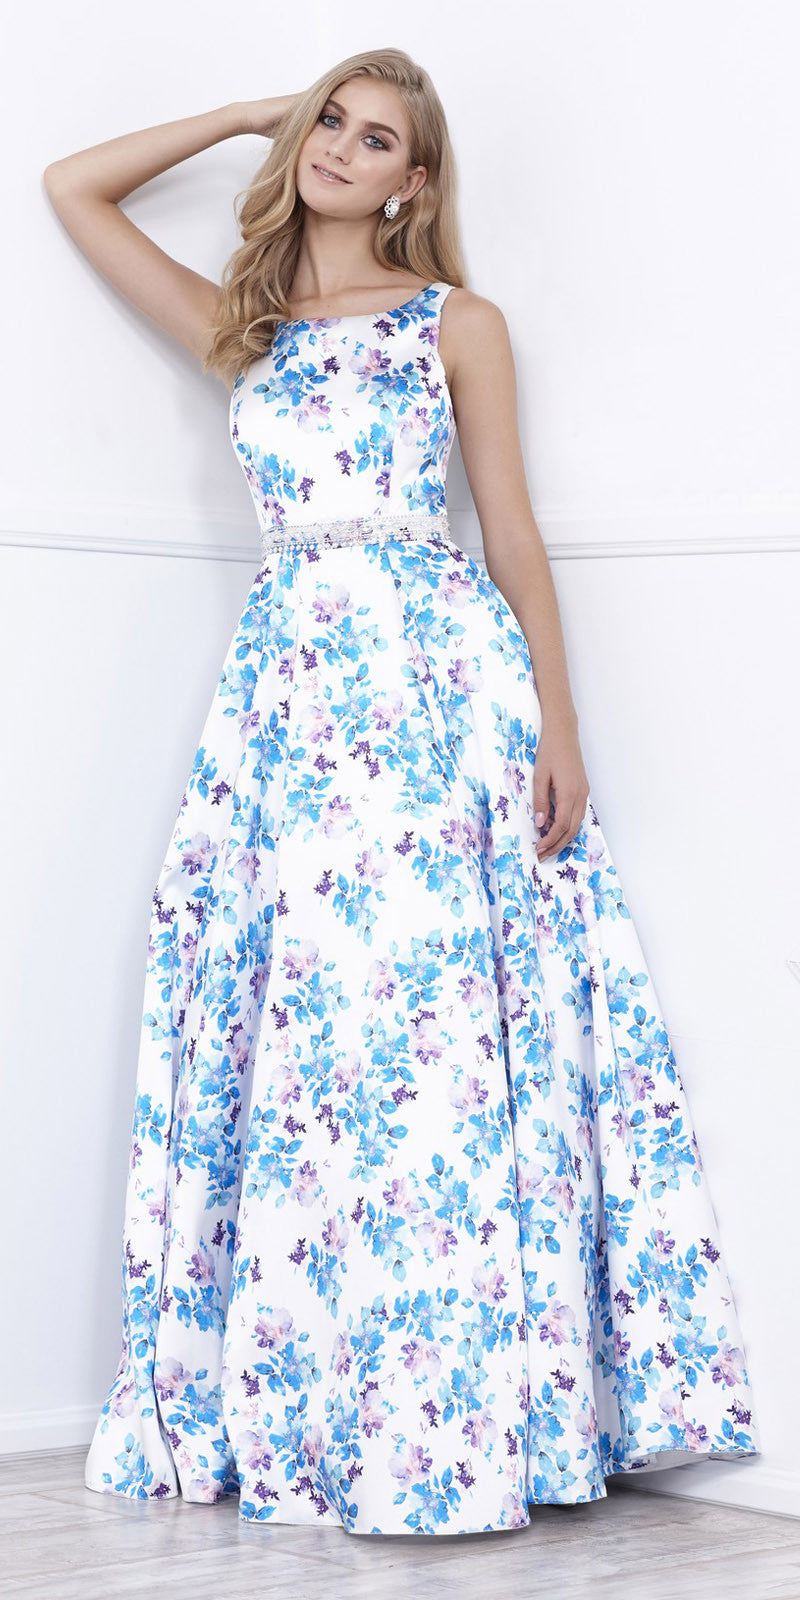 Scoop Neck White Printed Satin Sleeveless Prom Dress Long